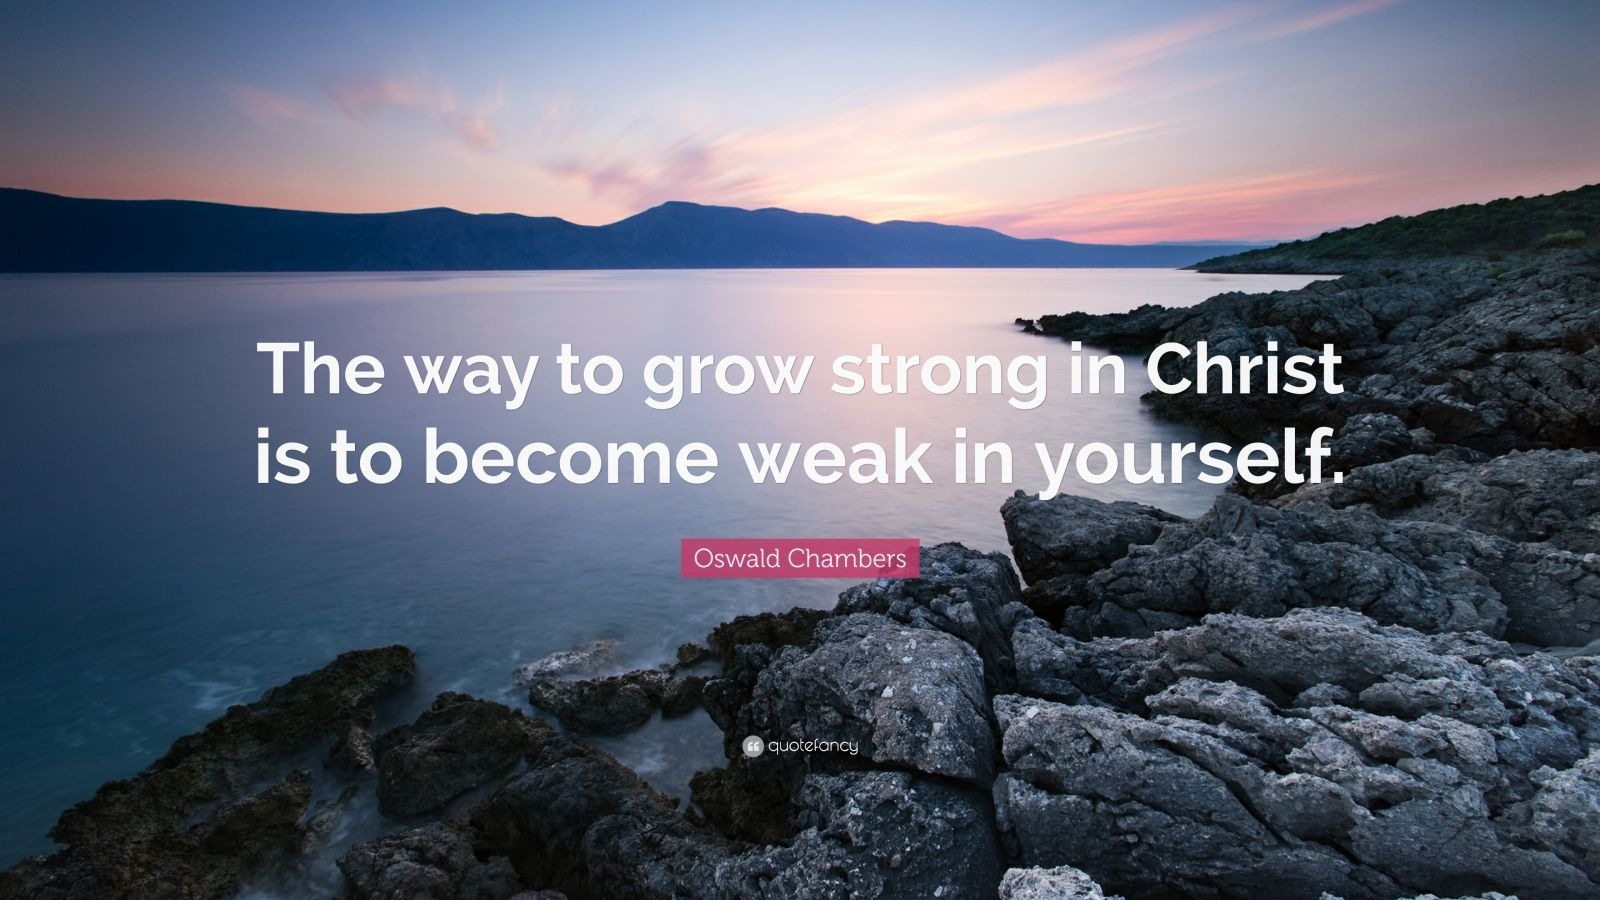 """Oswald Chambers Quote: """"The way to grow strong in Christ is to become weak in yourself."""""""